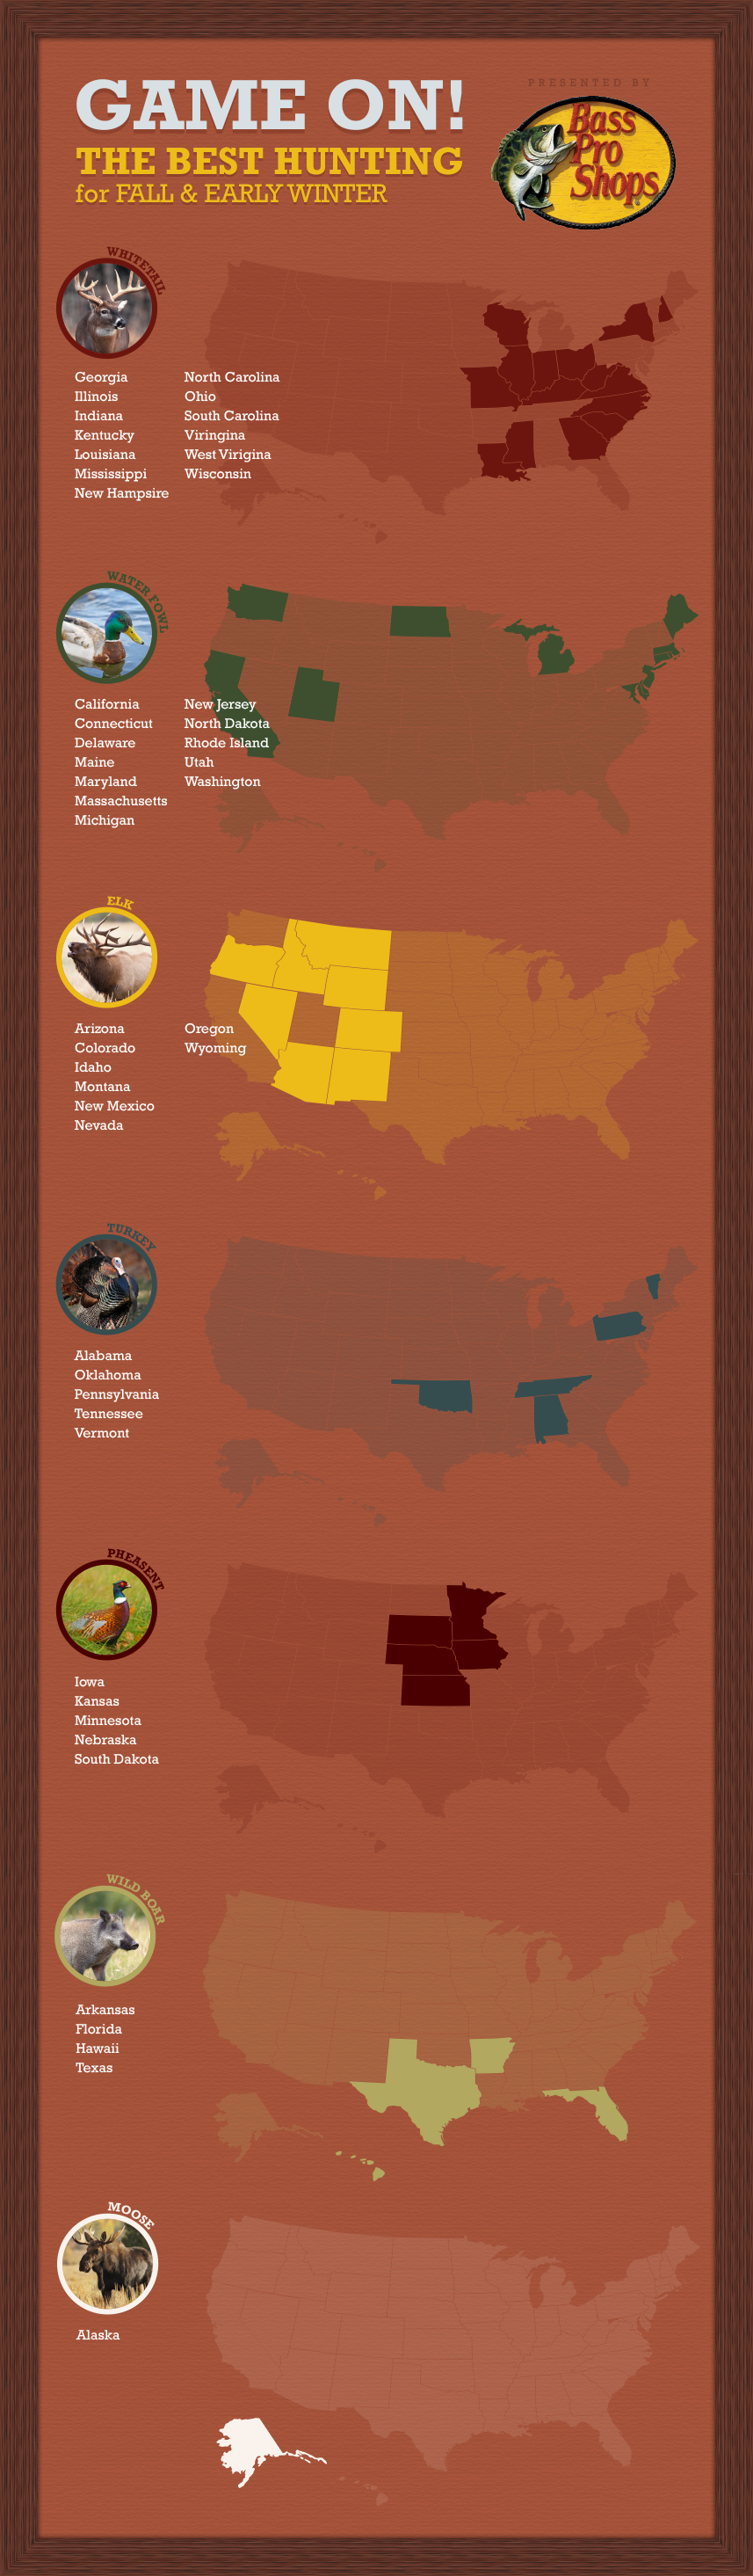 Best Hunting By State Infographic